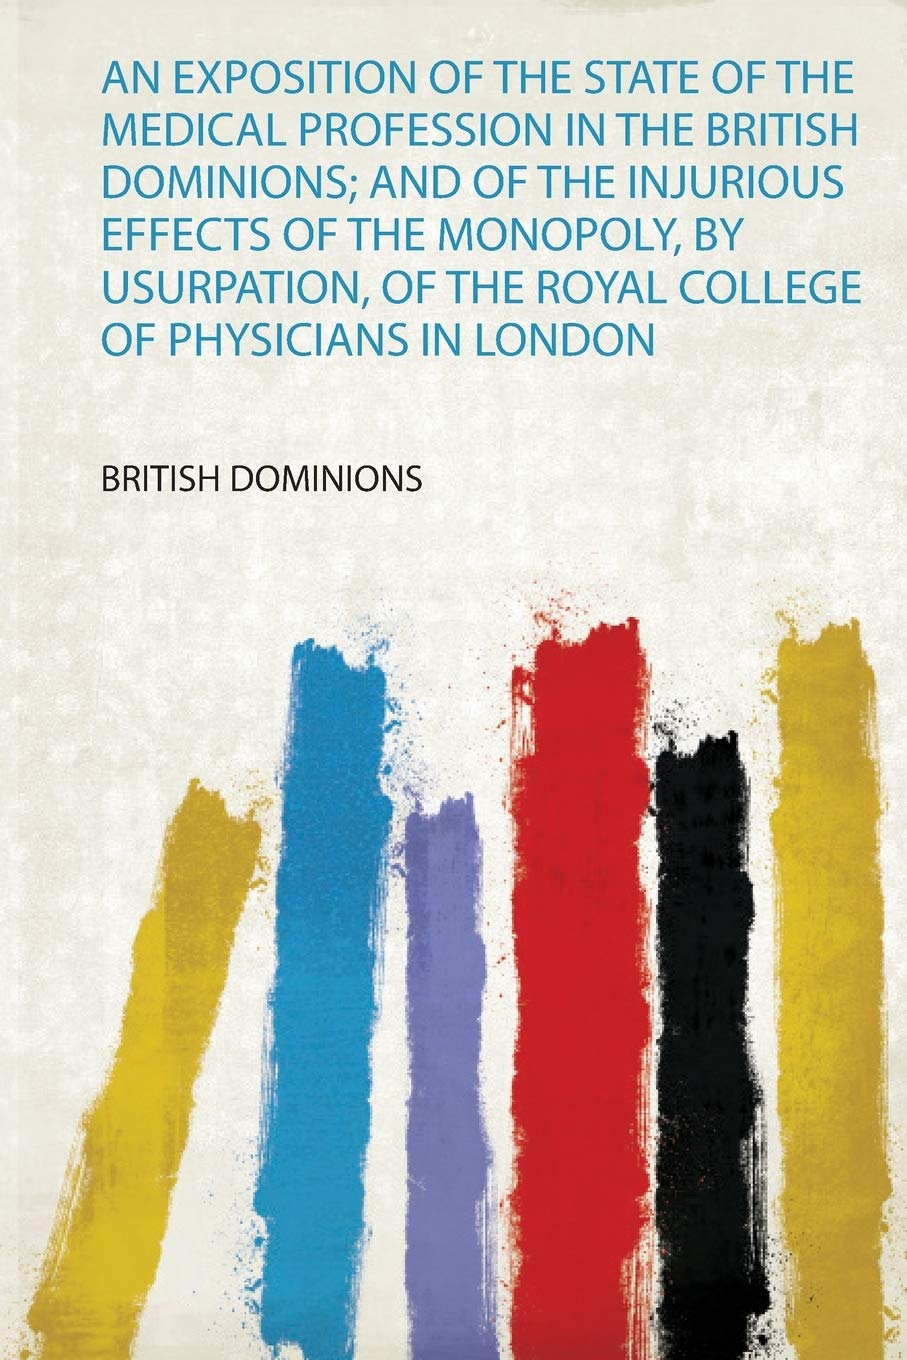 An Exposition of the State of the Medical Profession in the British Dominions; and of the Injurious Effects of the Monopoly, by Usurpation, of the Royal College of Physicians in London: Amazon.es: